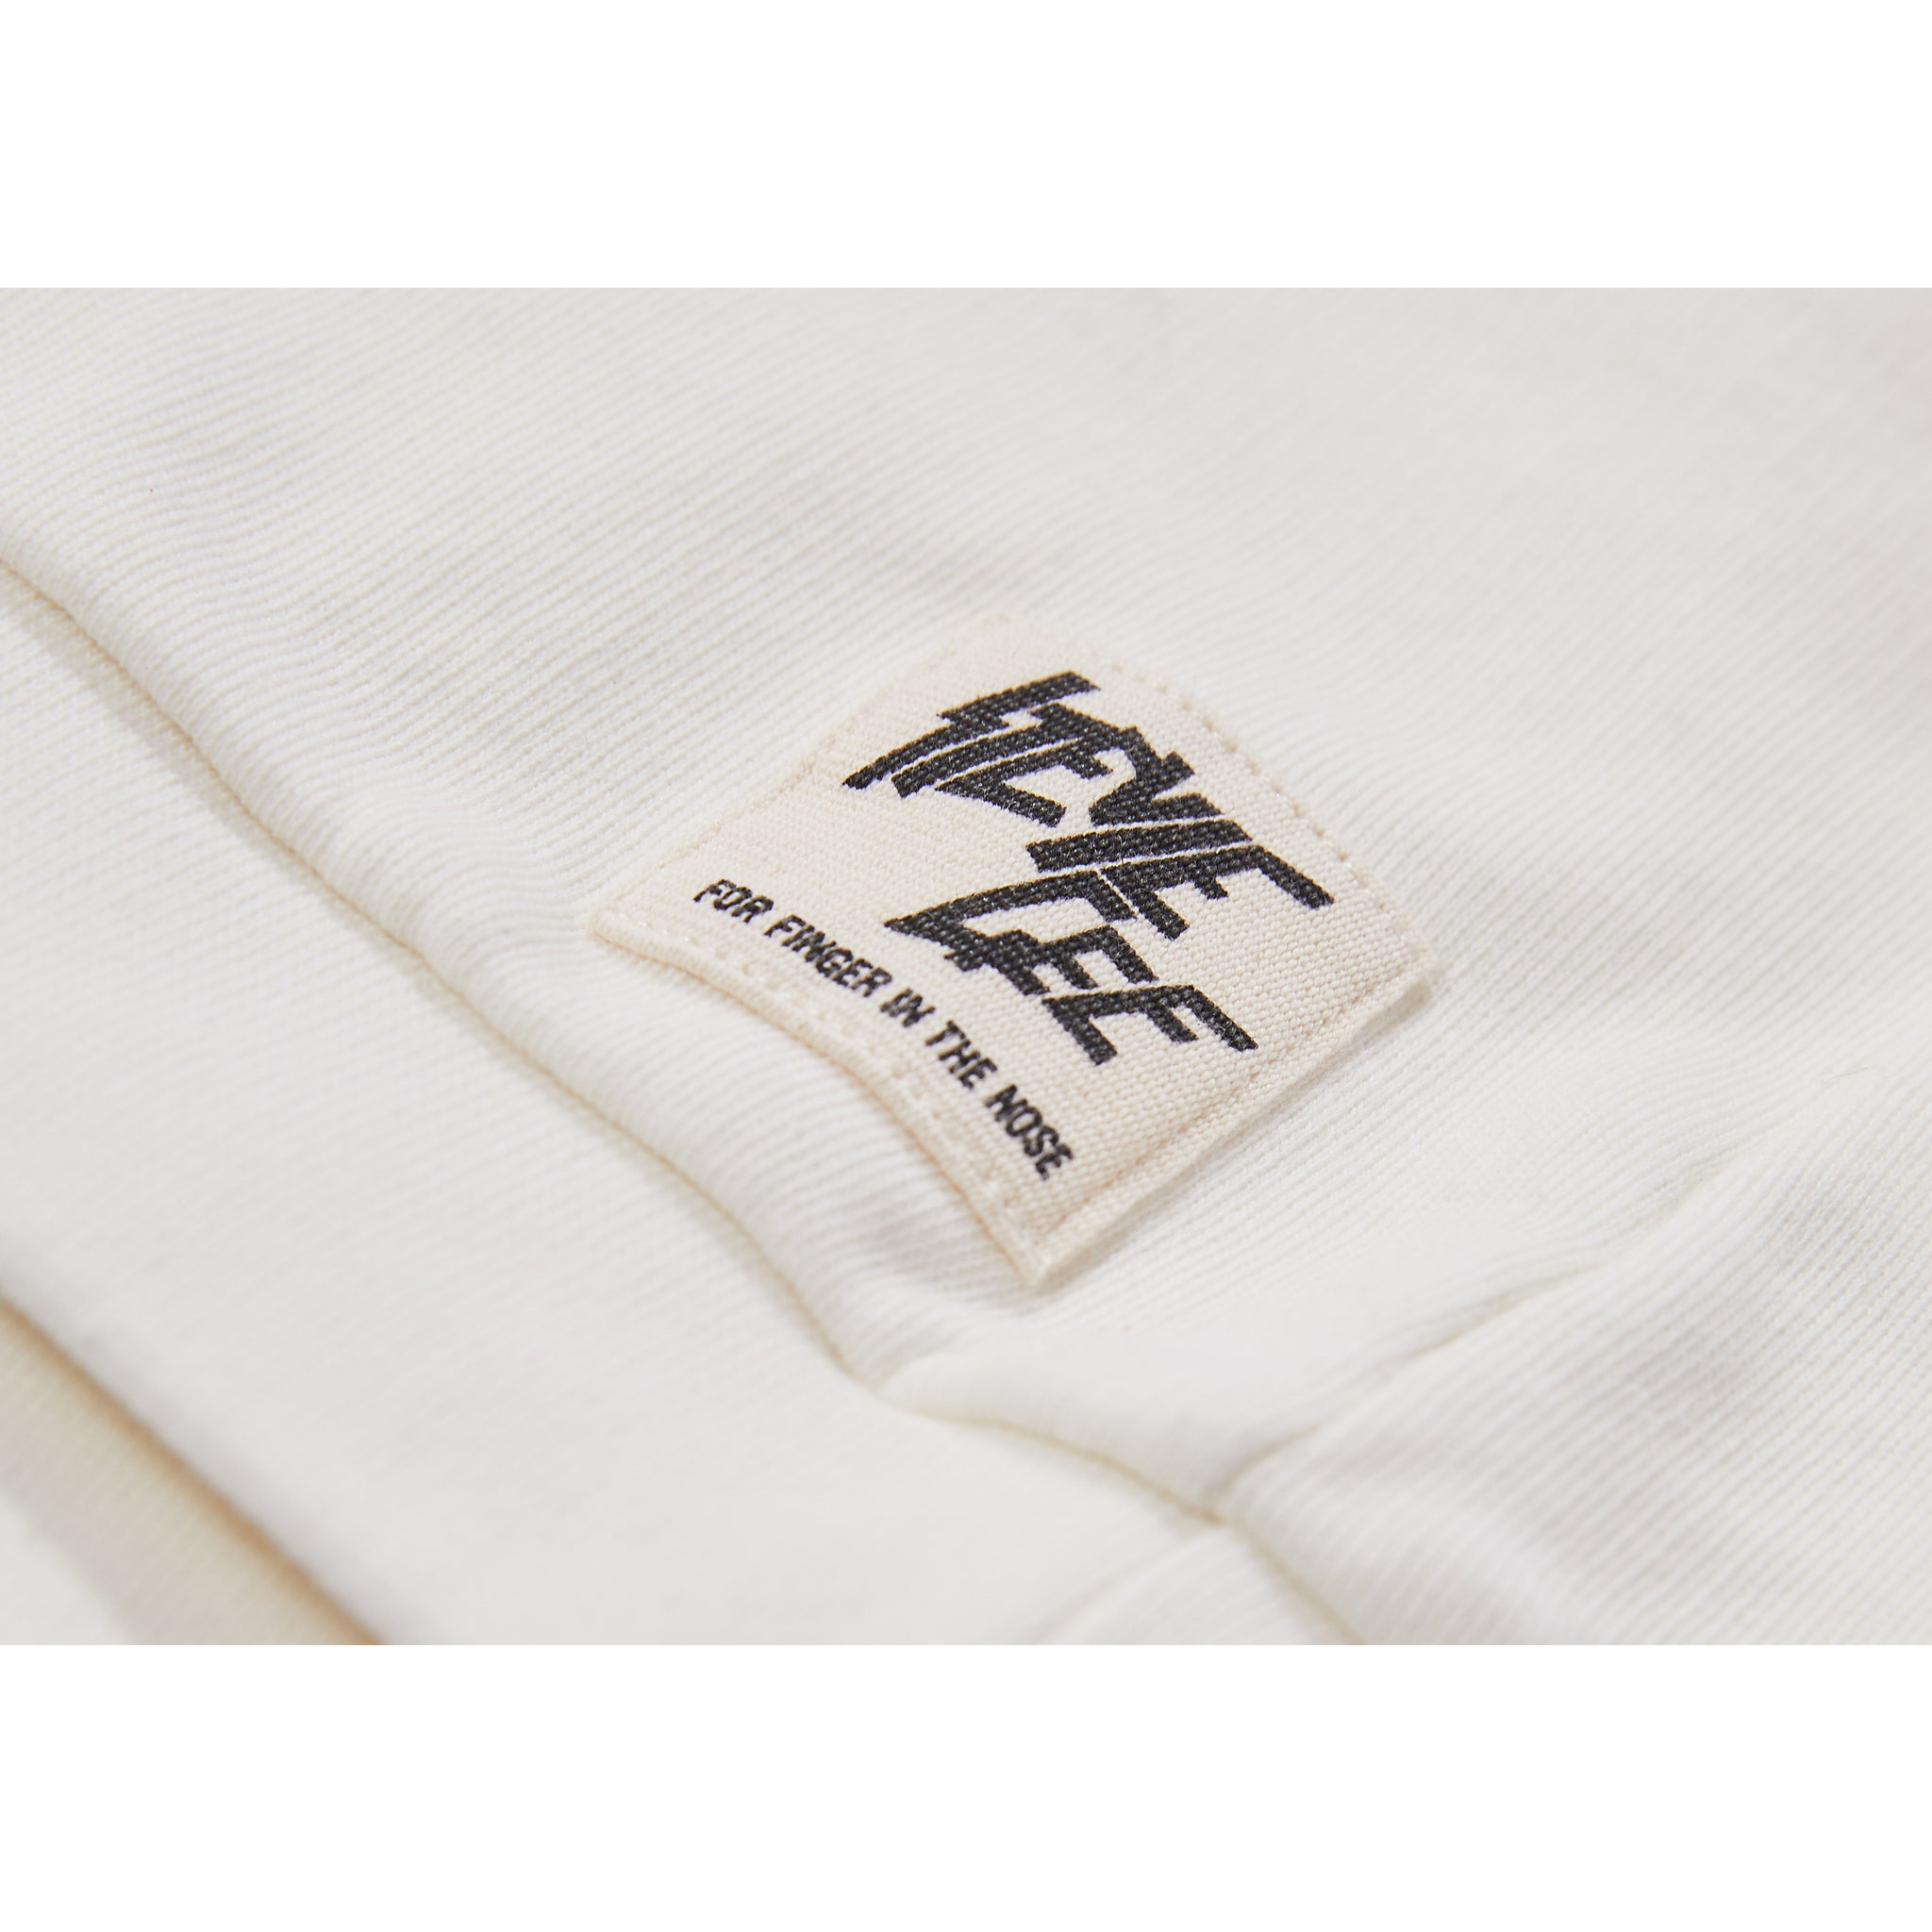 BRIAN Off White Moto Tiger - Crew Neck Sweatshirt 4